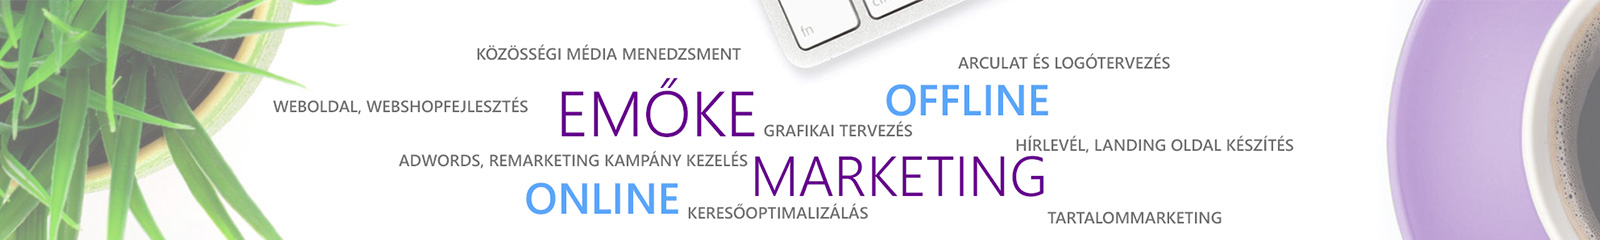 emokemarketing